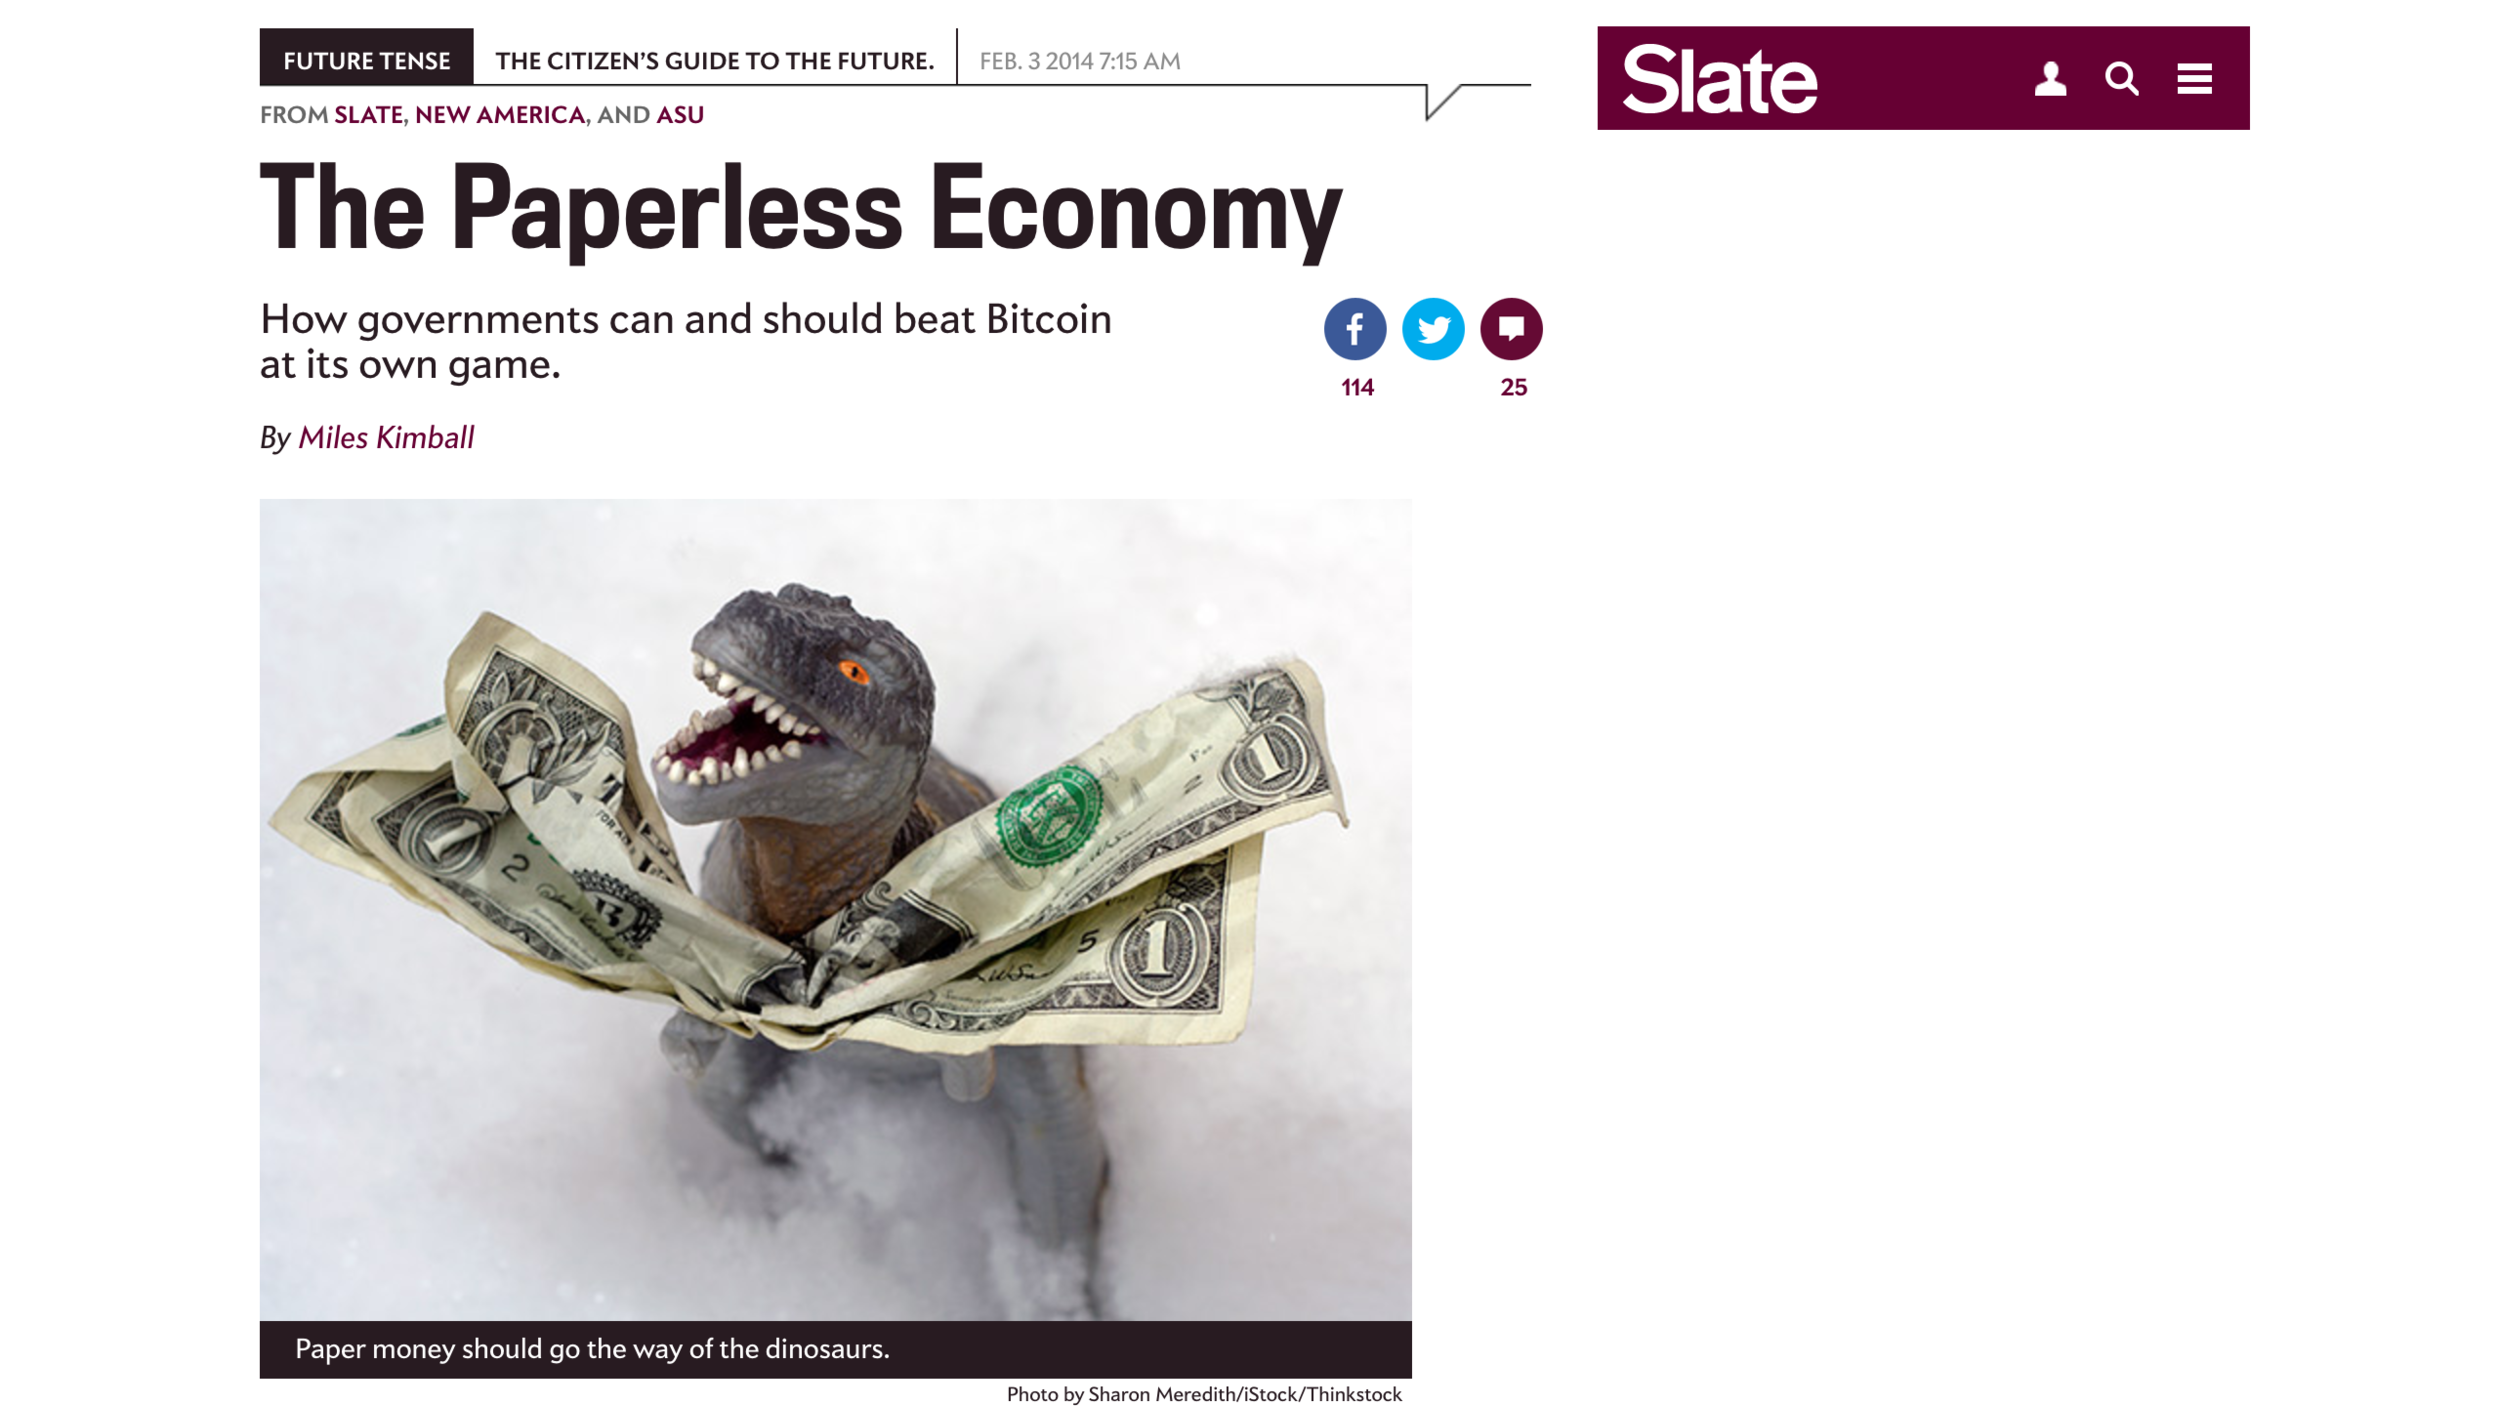 Link to the column on Slate